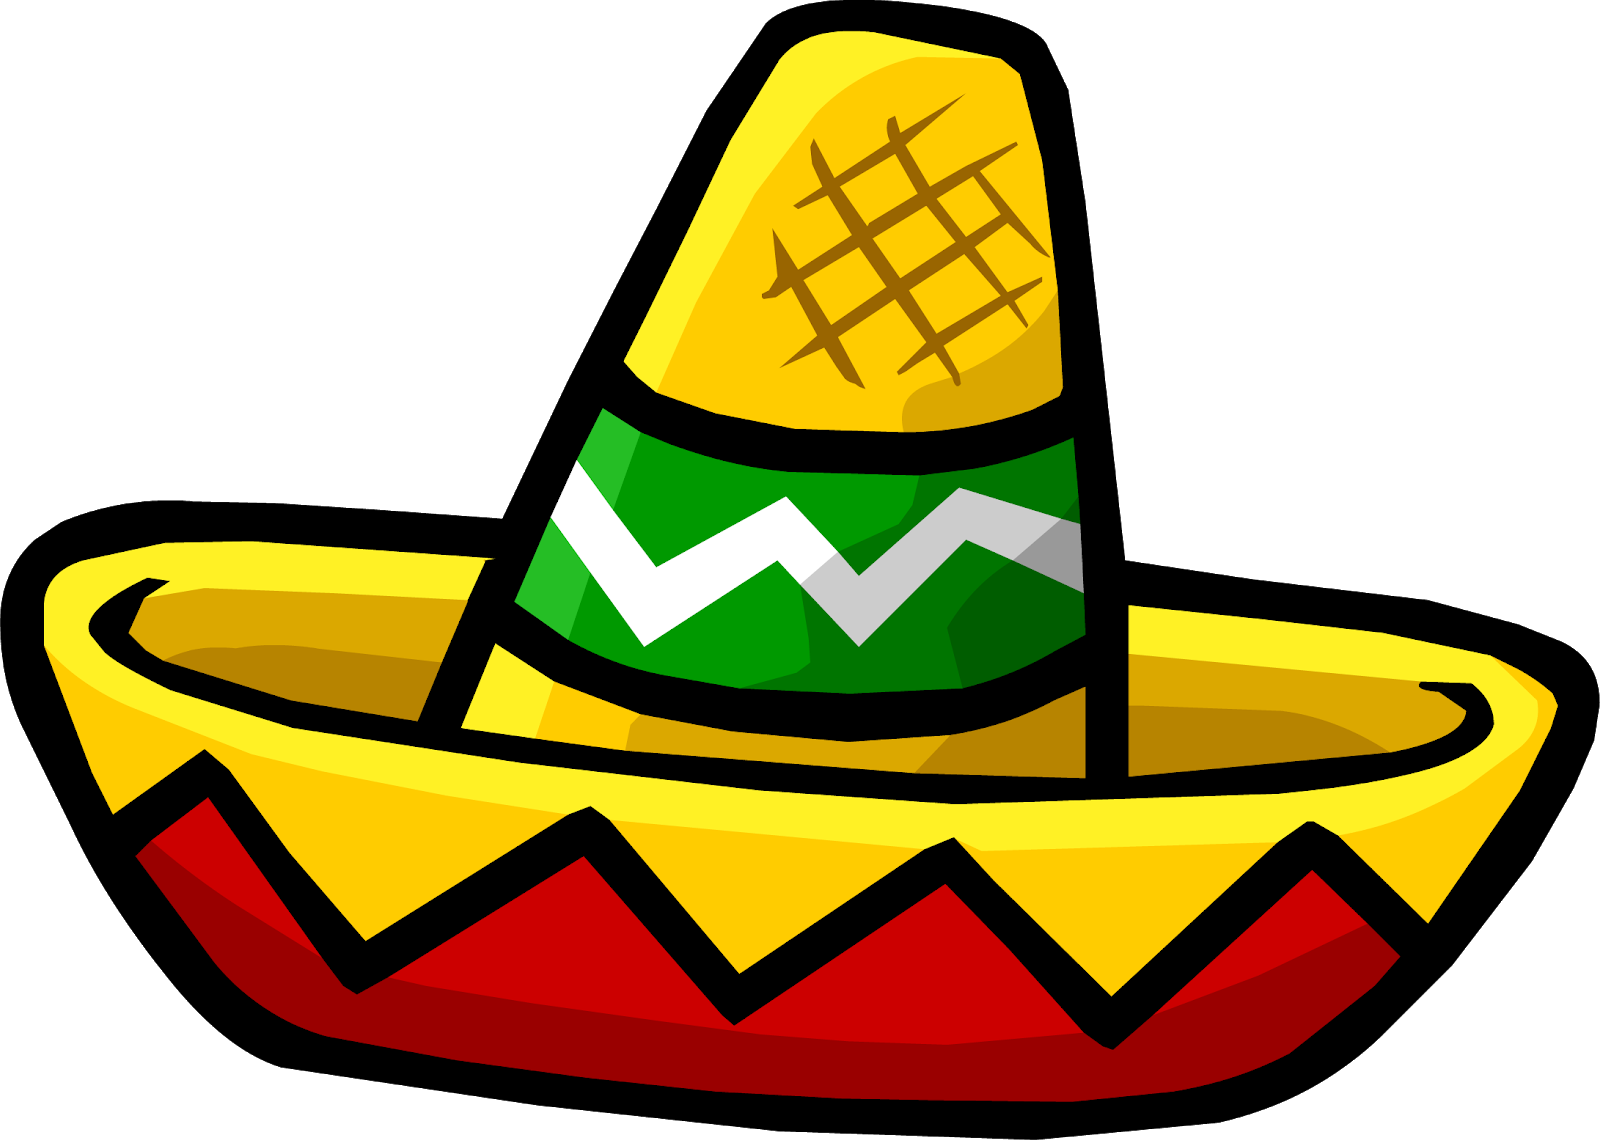 Free Jpeg Images Of Sombrero Hats.